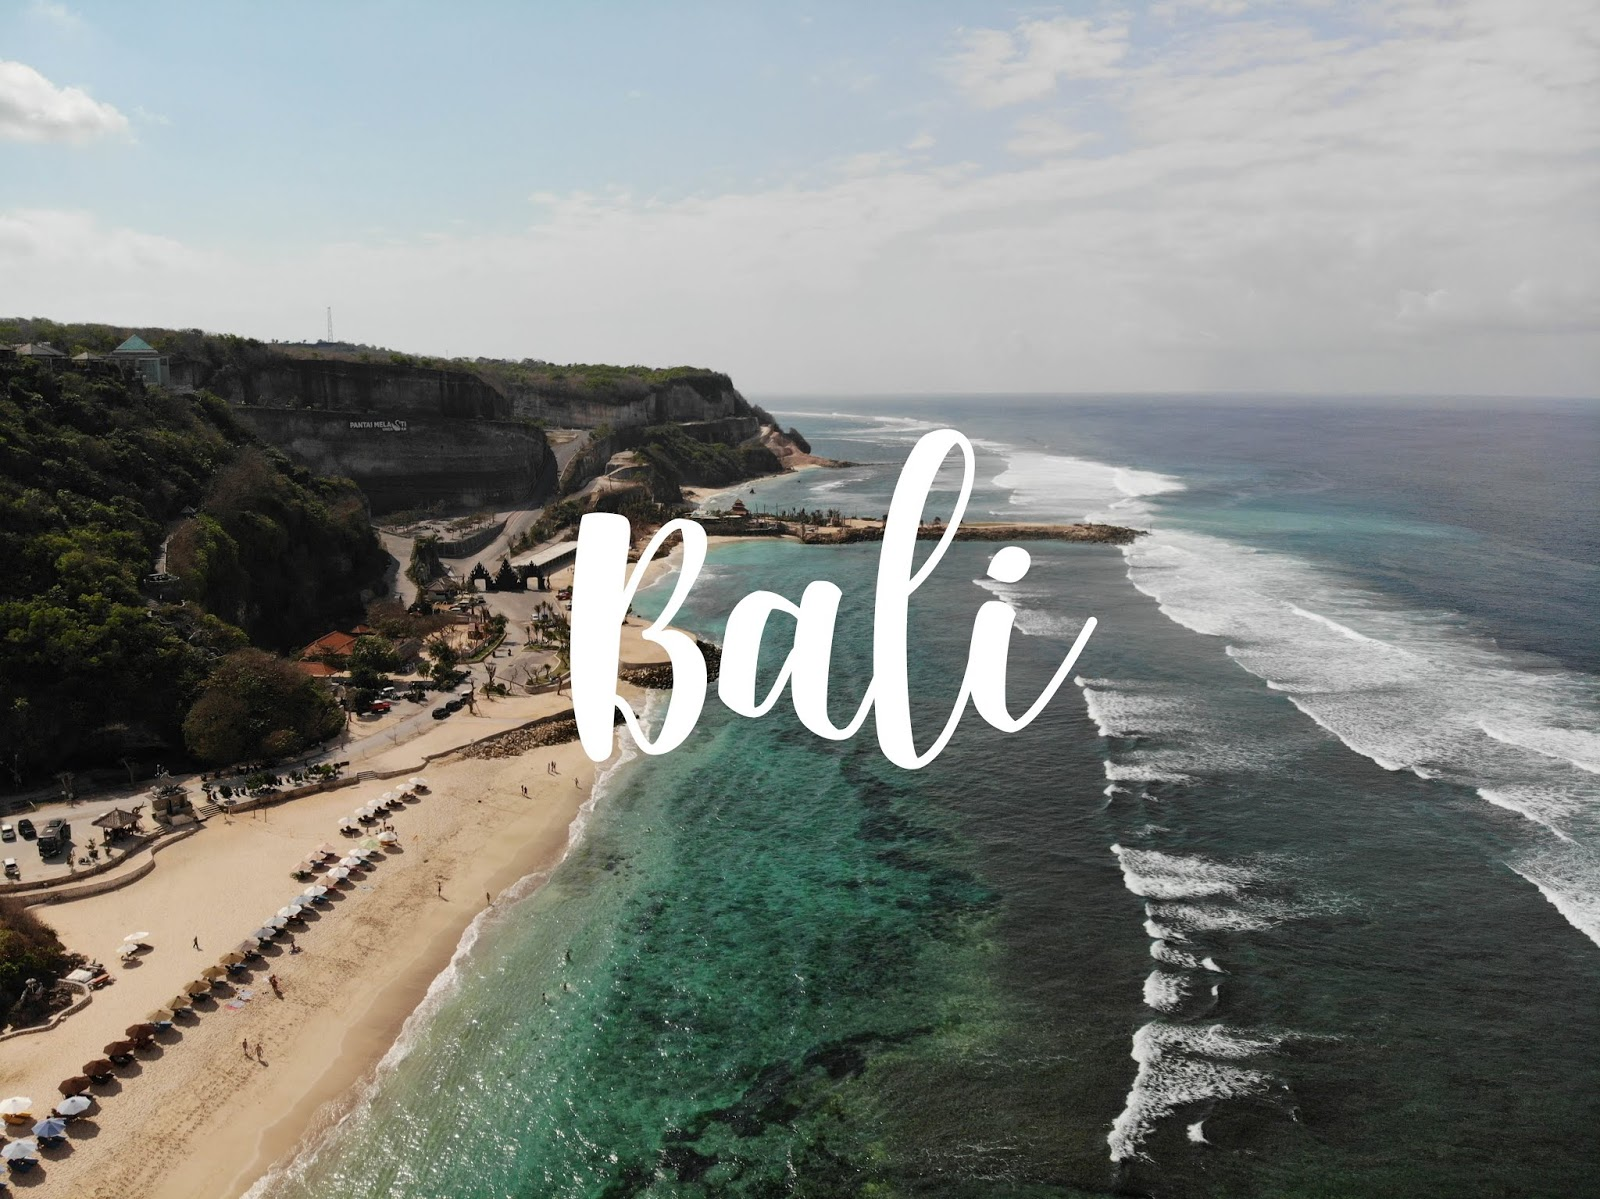 The Ultimate Guide to Bali - Getting around Bali + Where to Stay in Bali + Sample Itinerary & Things to do in Bali